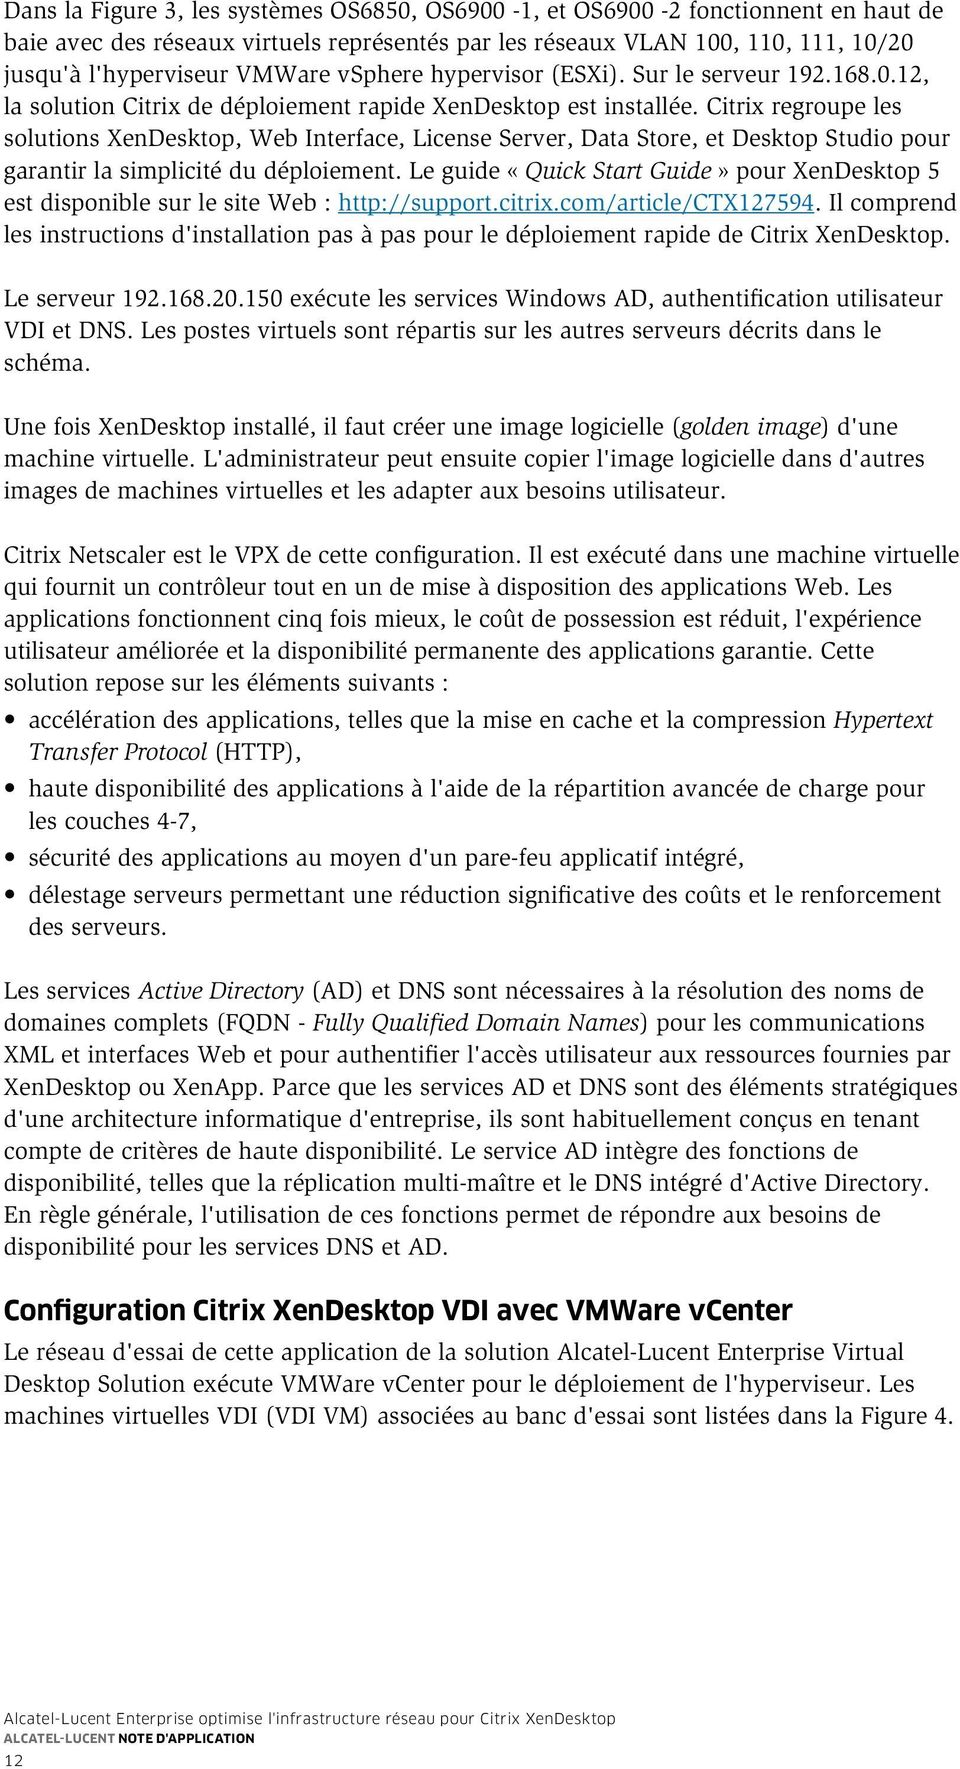 Citrix regroupe les solutions XenDesktop, Web Interface, License Server, Data Store, et Desktop Studio pour garantir la simplicité du déploiement.